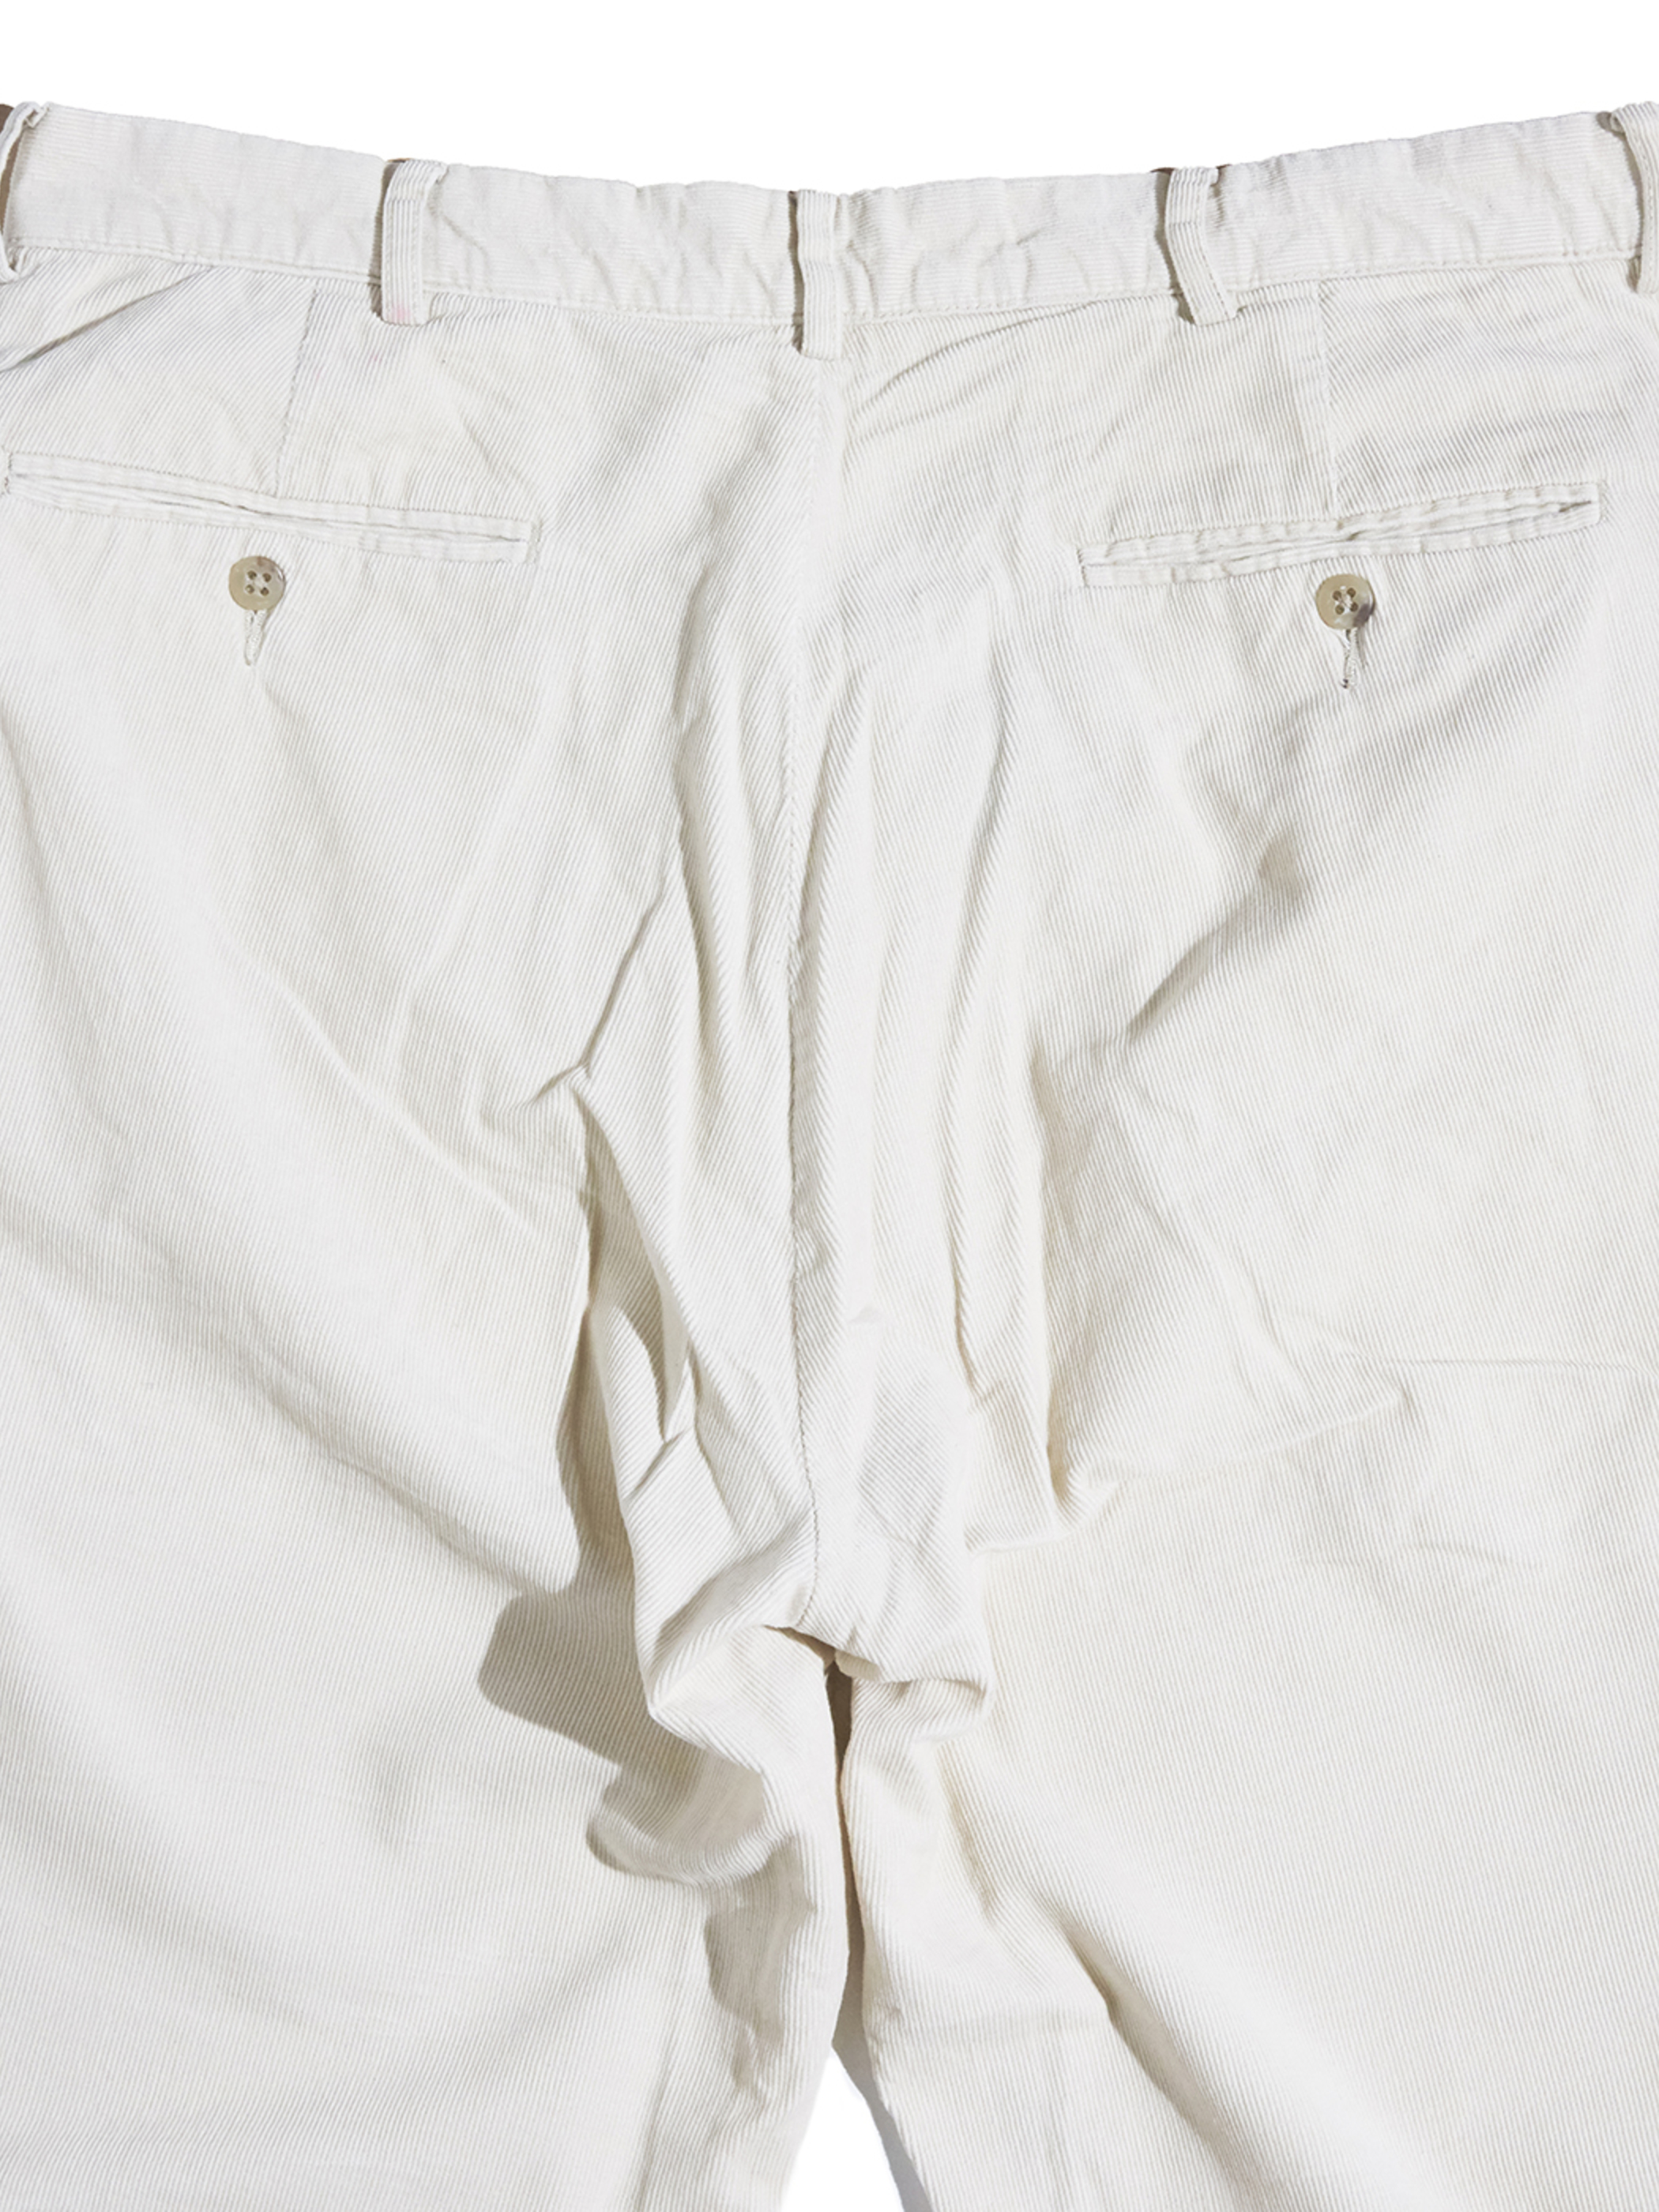 """1990s """"POLO by Ralph Lauren"""" corduroy pants -IVORY-"""